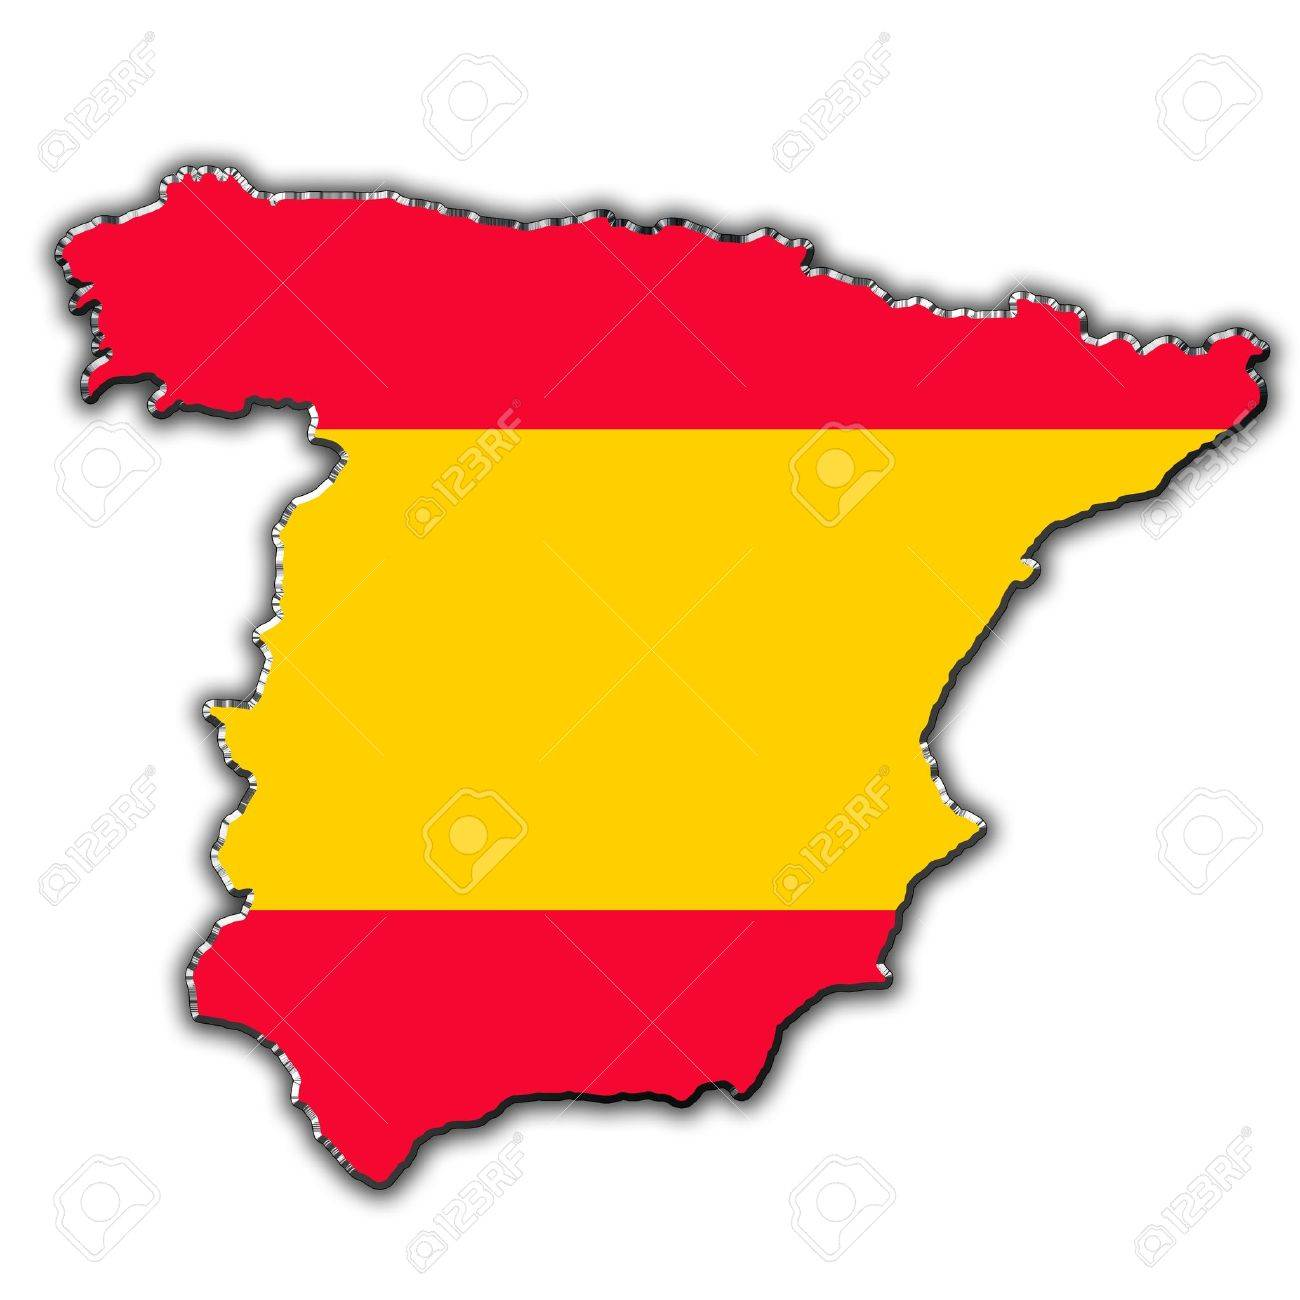 Outline Map Of Spain Covered In Spanish Flag Stock Photo Picture